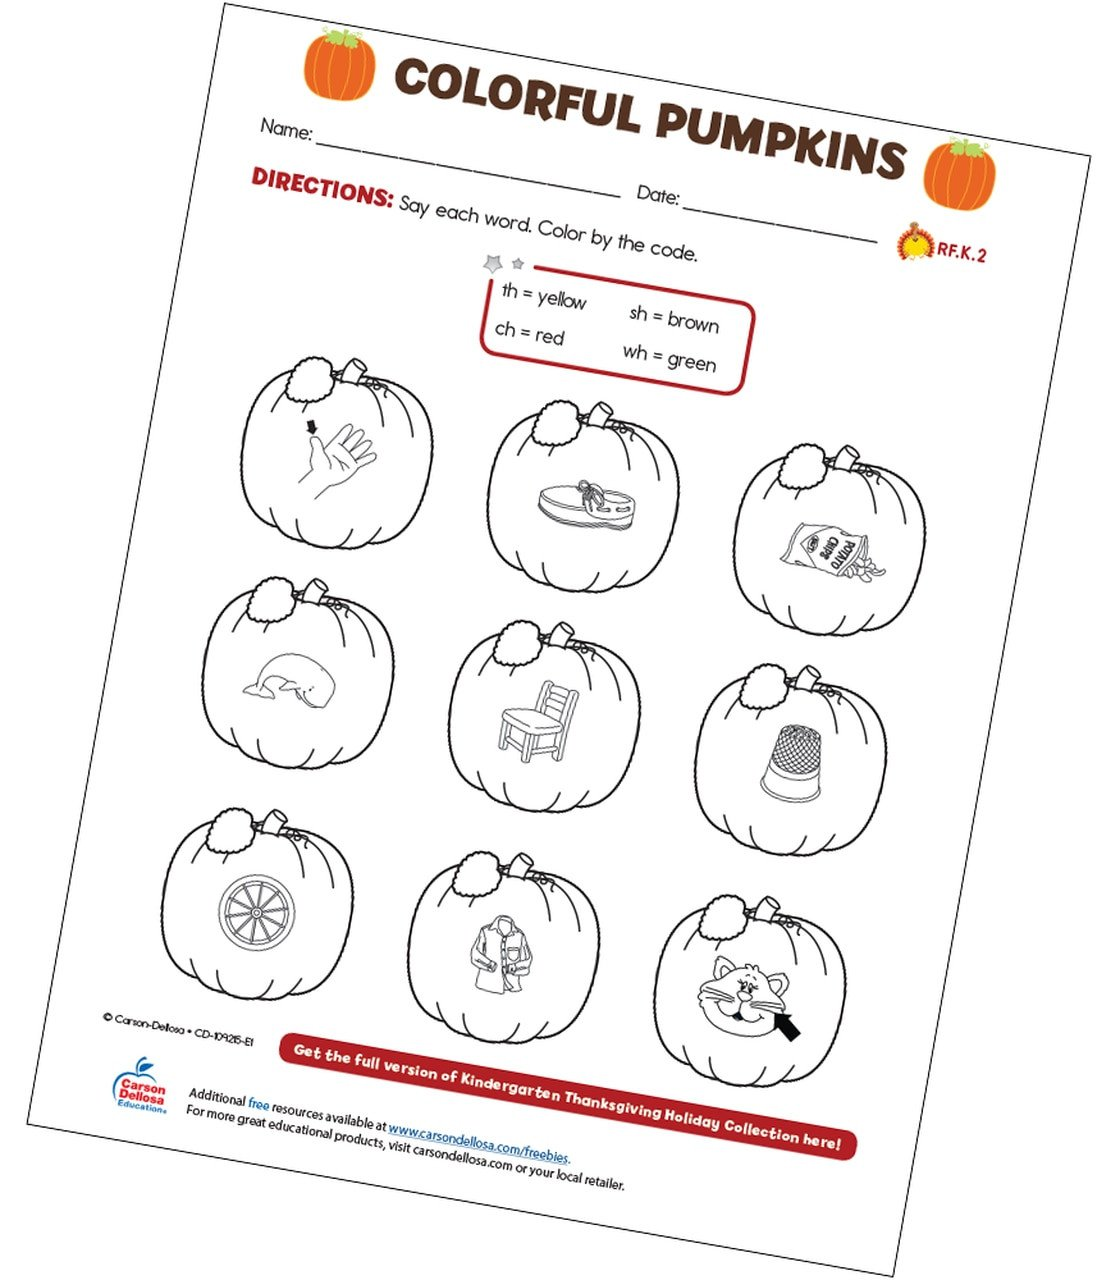 fr colorful pumpkins free printable fr